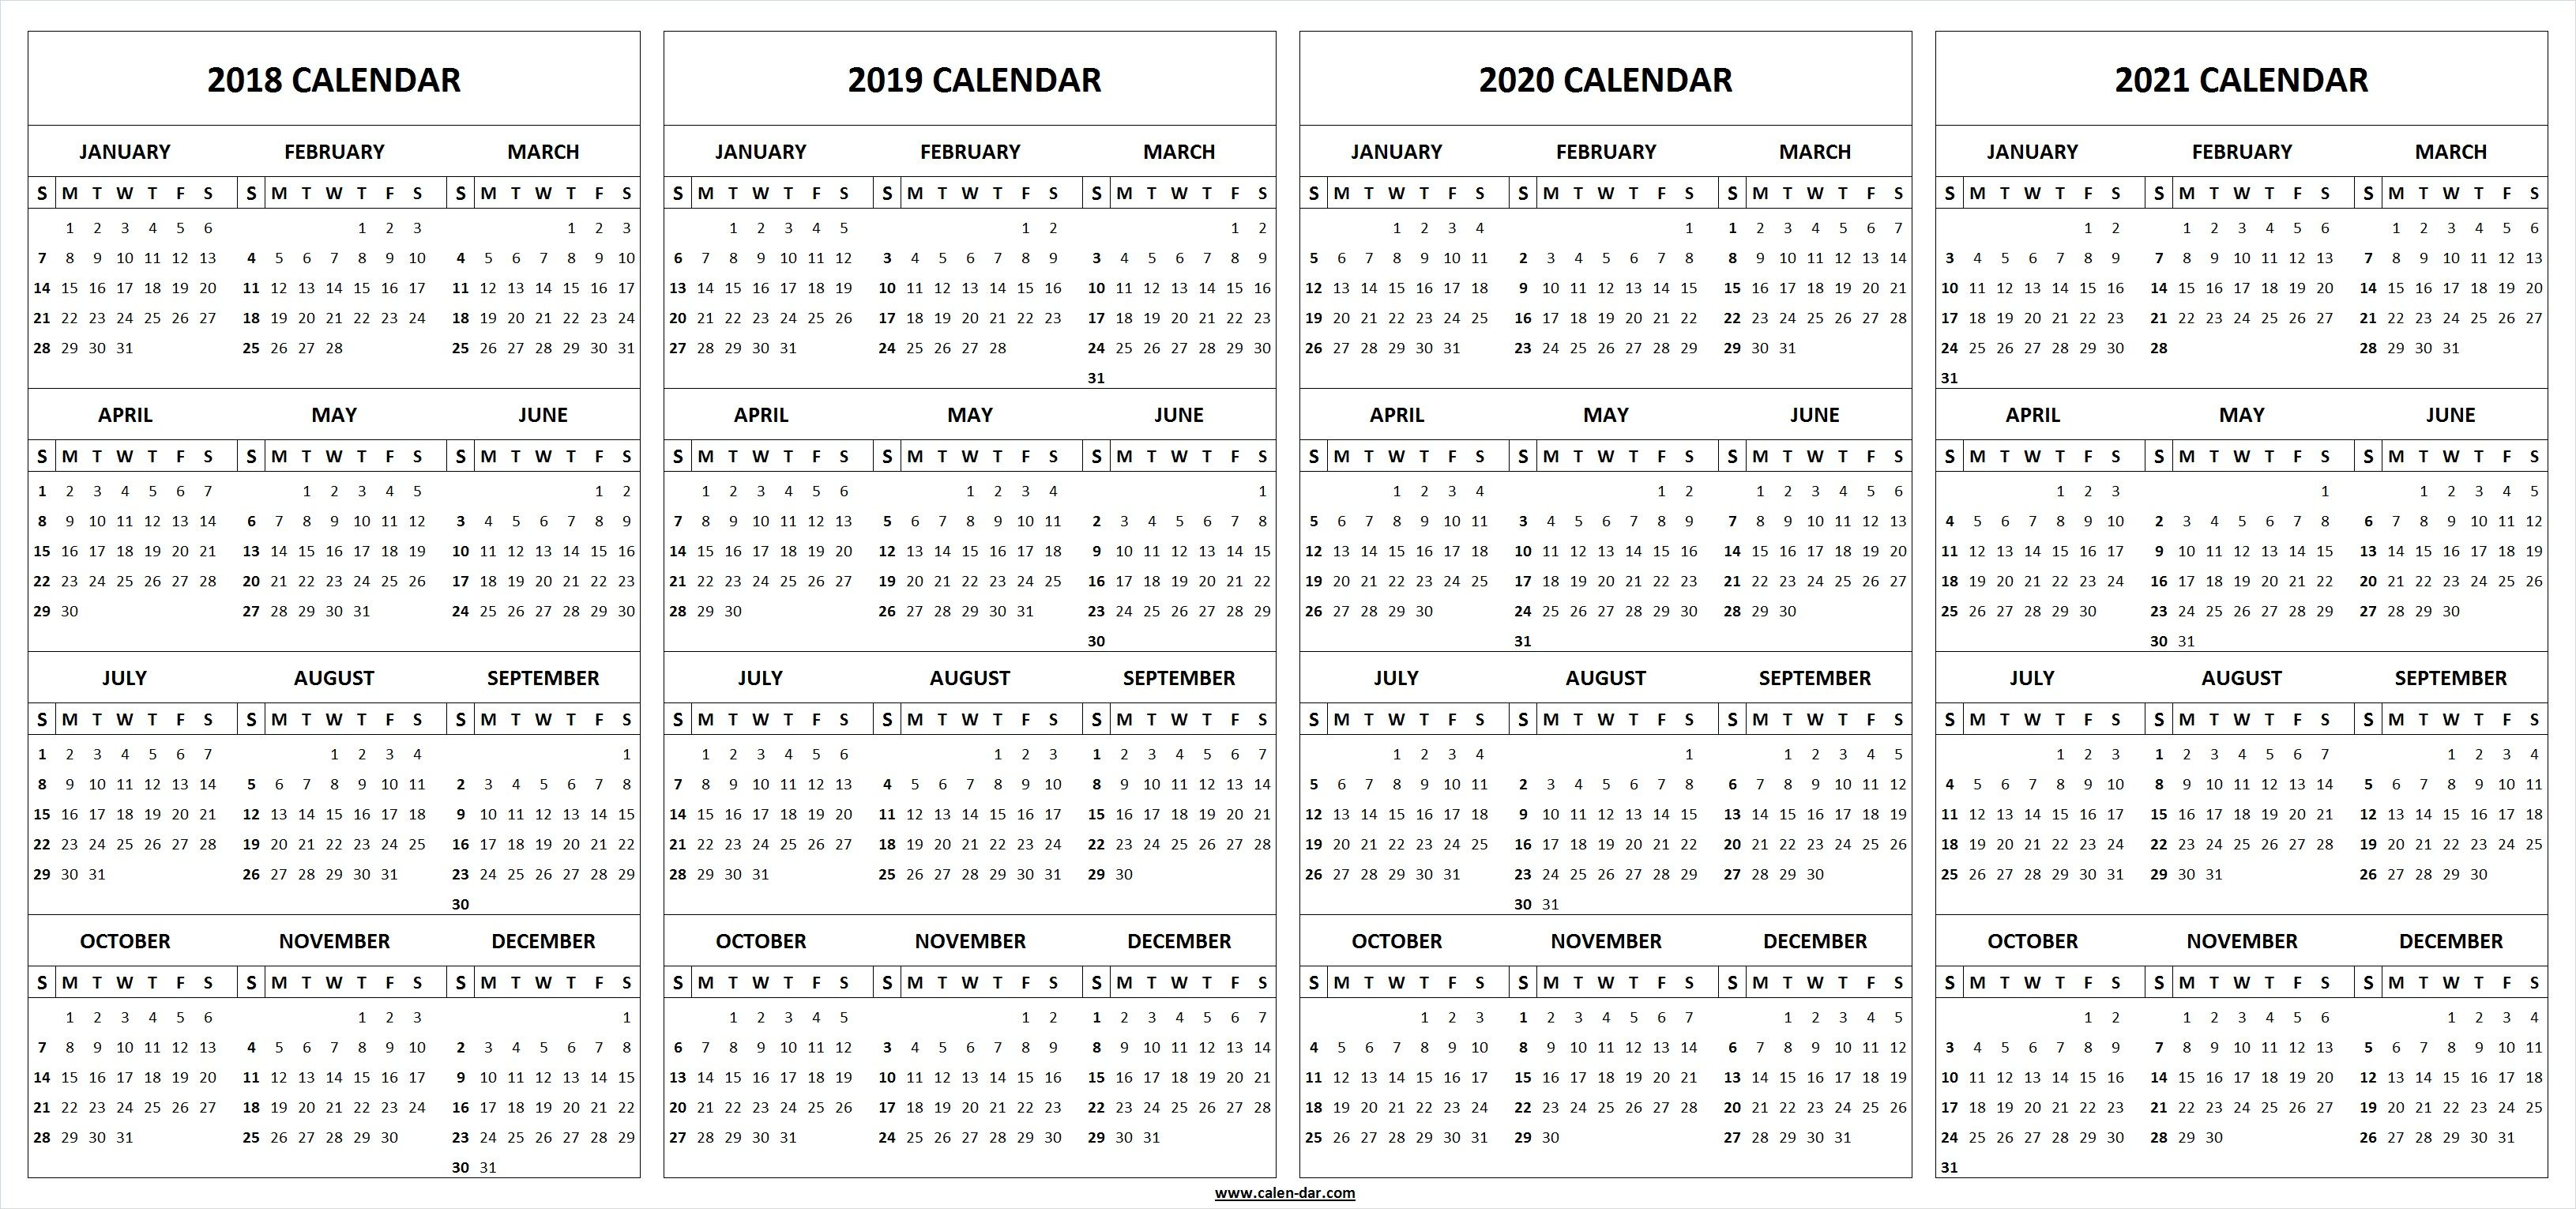 Fiscal Year 2019 Calendar Printable With 4 Four 2018 2020 2021 Template